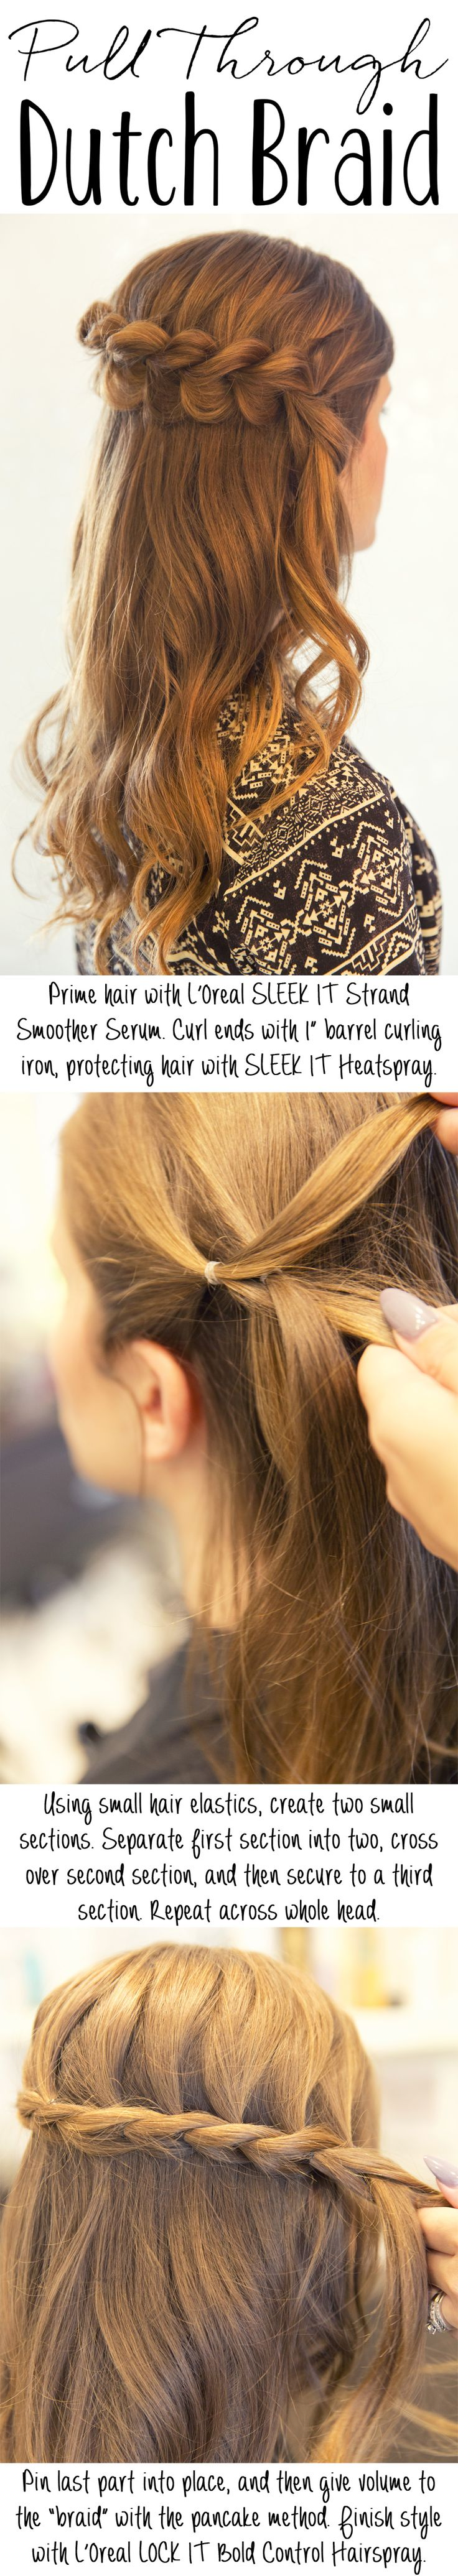 Pull Through Dutch Braid. Inspired by L'Oreal Advanced Hairstyles - What a fun and actually easy hairstyle that is great for dressy or casual occasions.